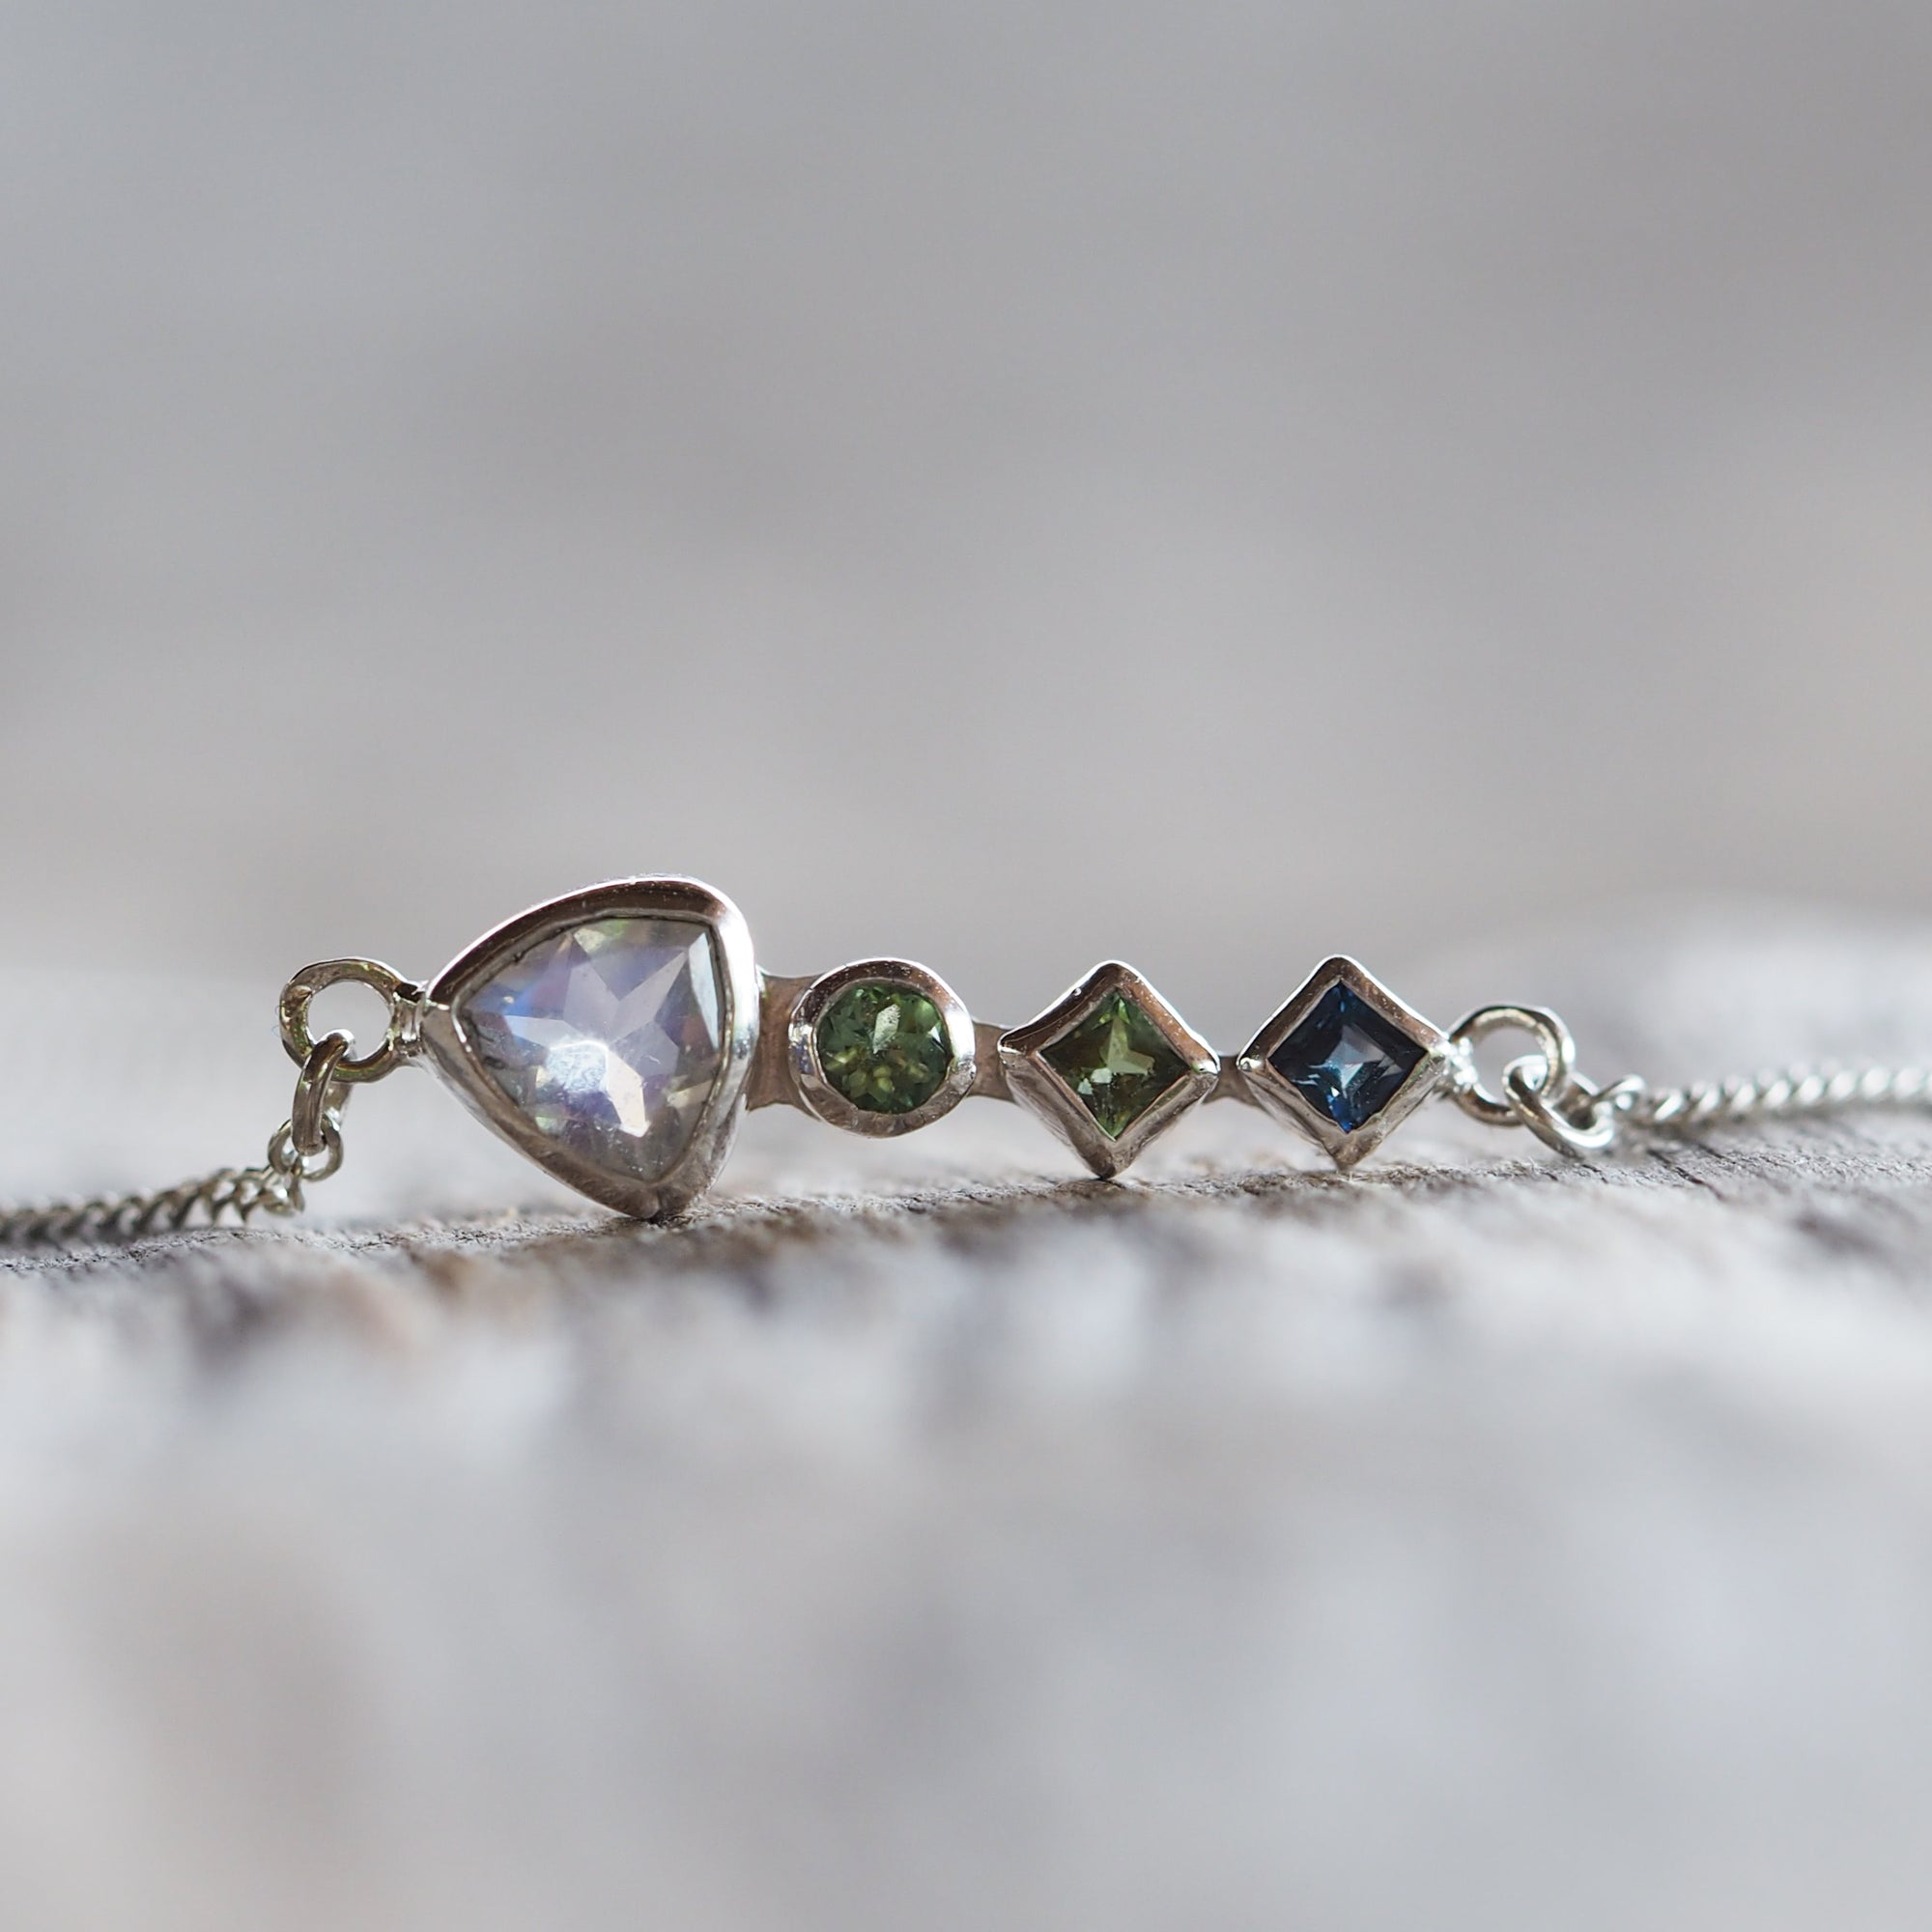 Rainbow Moonstone, Green Tourmaline and Sapphire Necklace